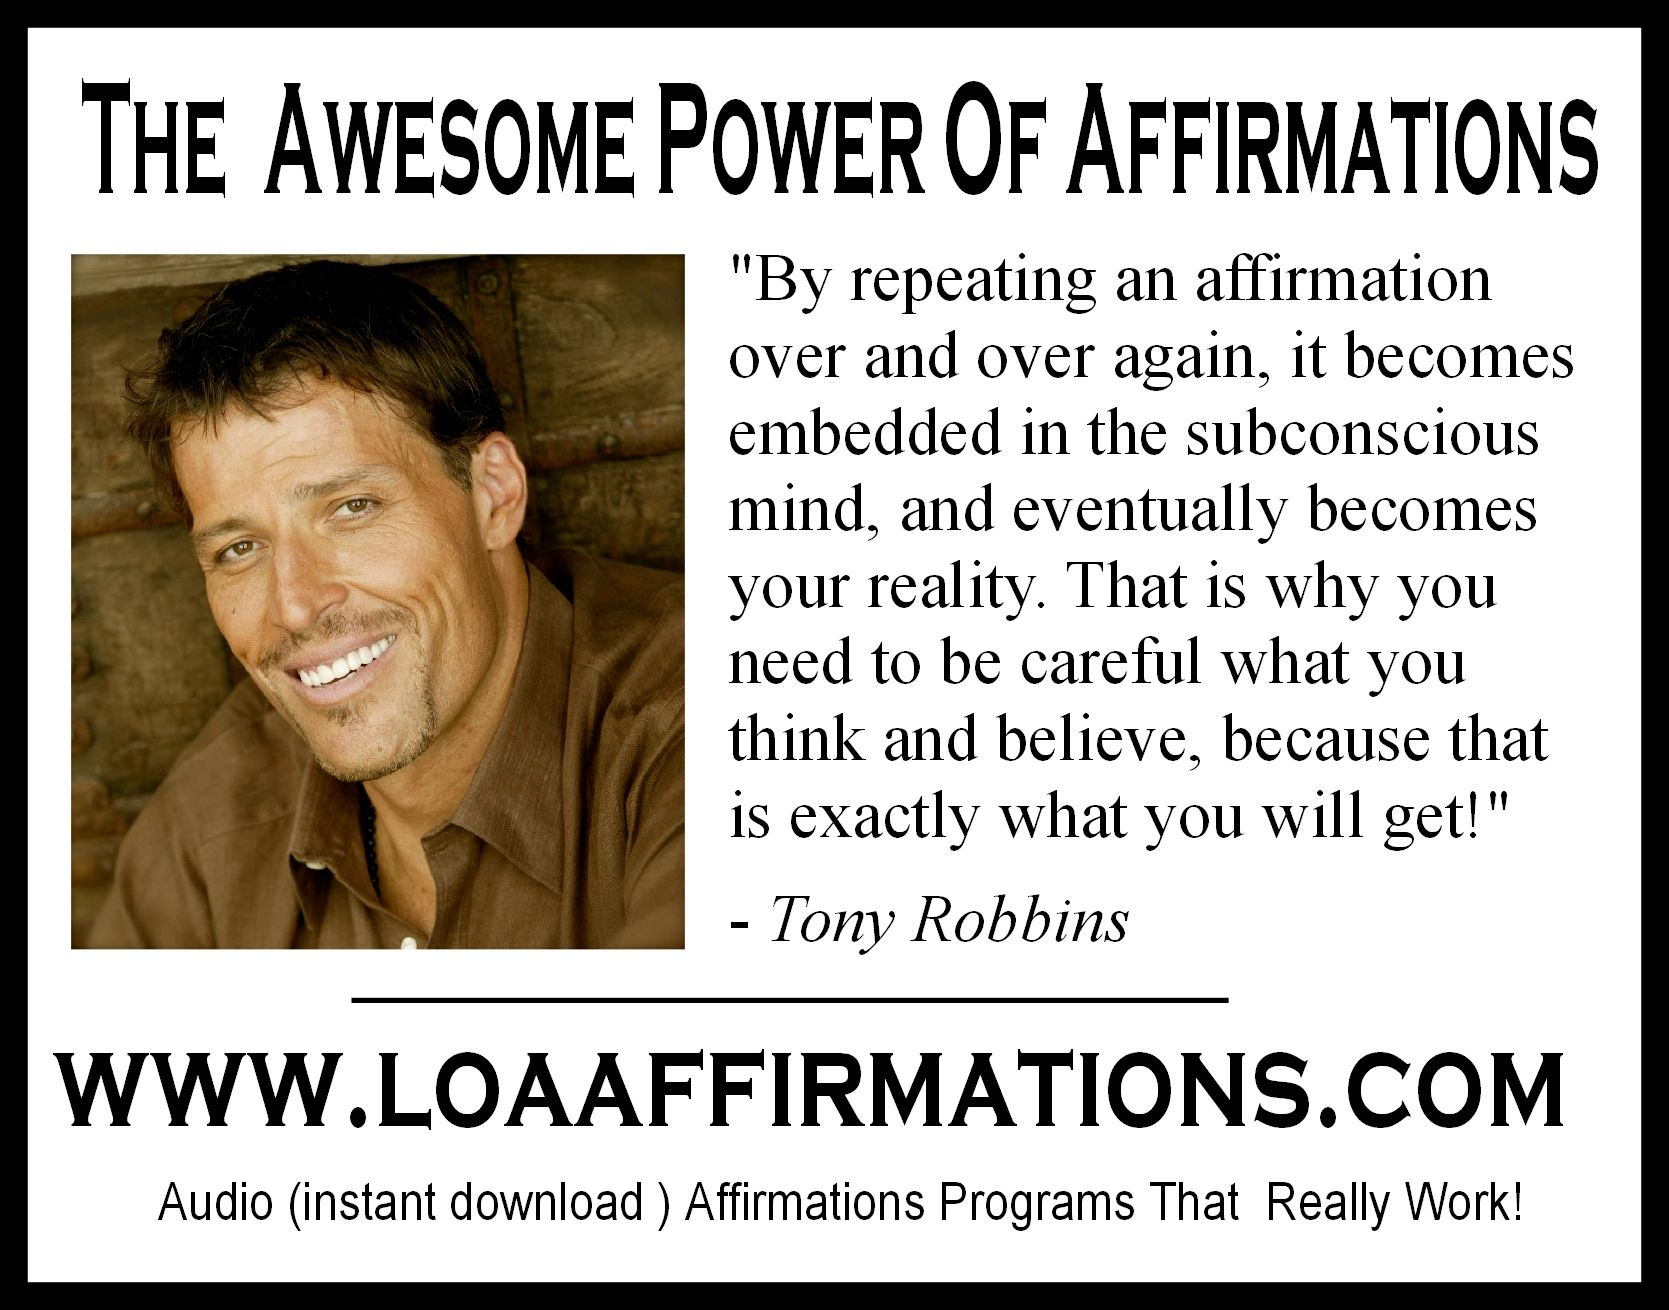 Http Www Loaaffirmations Com Affirmations Do Work Tony Robbins Personal Power Affirmations Law Of Attraction Affirmations